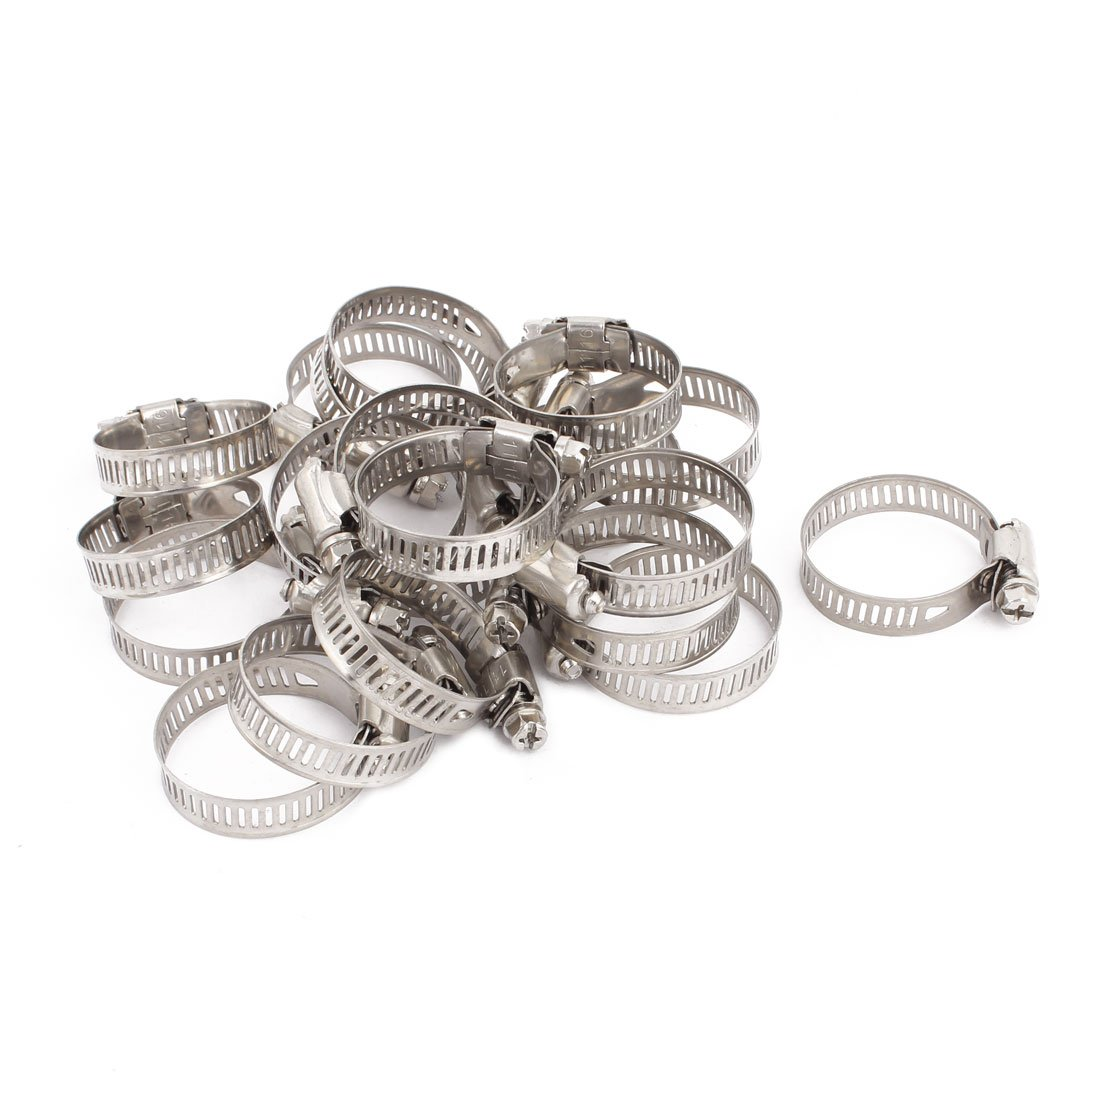 uxcell 21mm-38mm Adjustable Range 10mm Width Stainless Steel Worm Gear Hose Clamp 20pcs